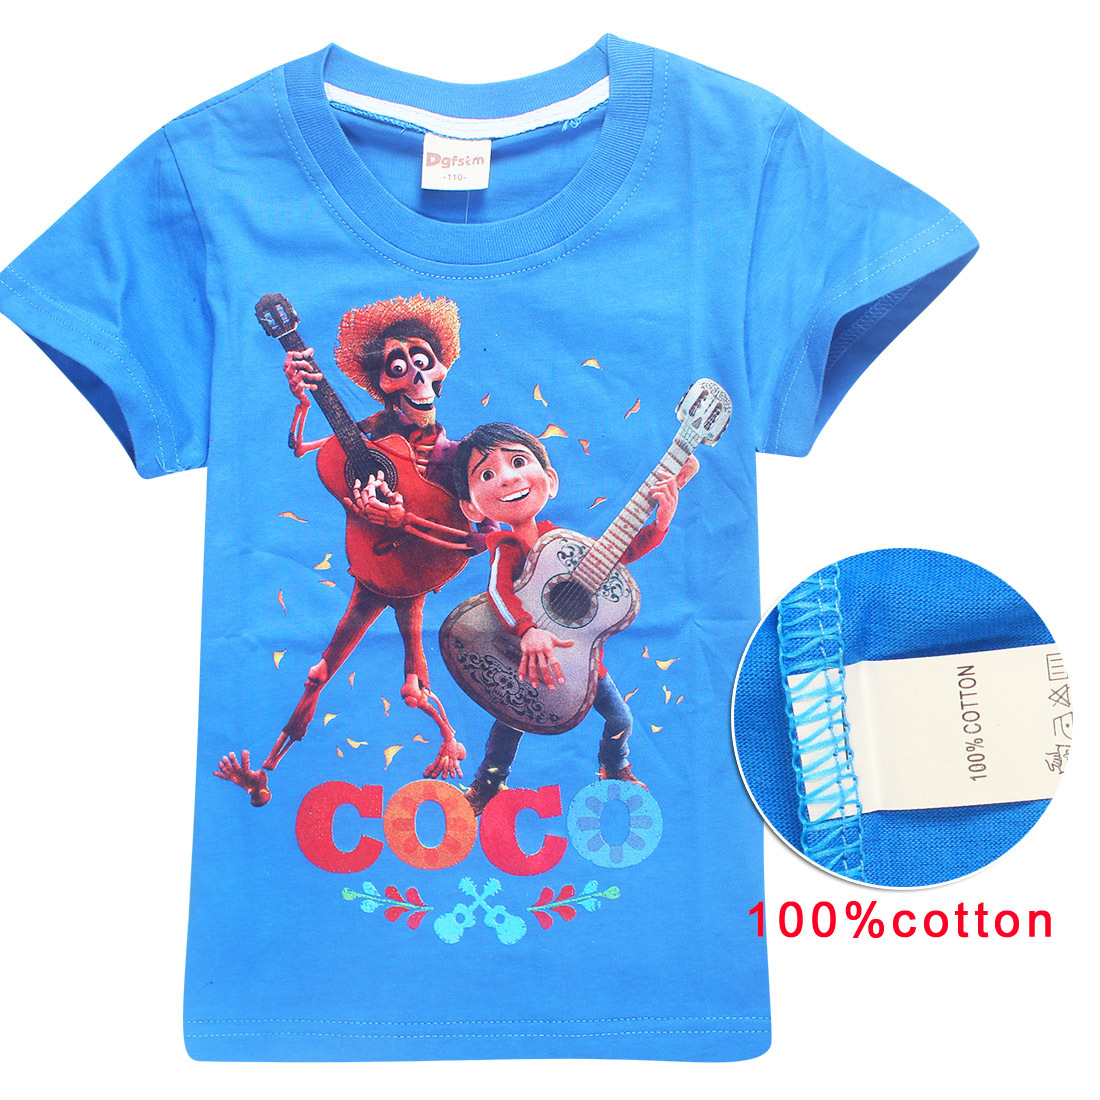 2018 New Summer Childrens Wear 100%Cotton tshirt summer COCO children T-shirts Baby Boys and Girls Short Sleeve Top tee Clothes